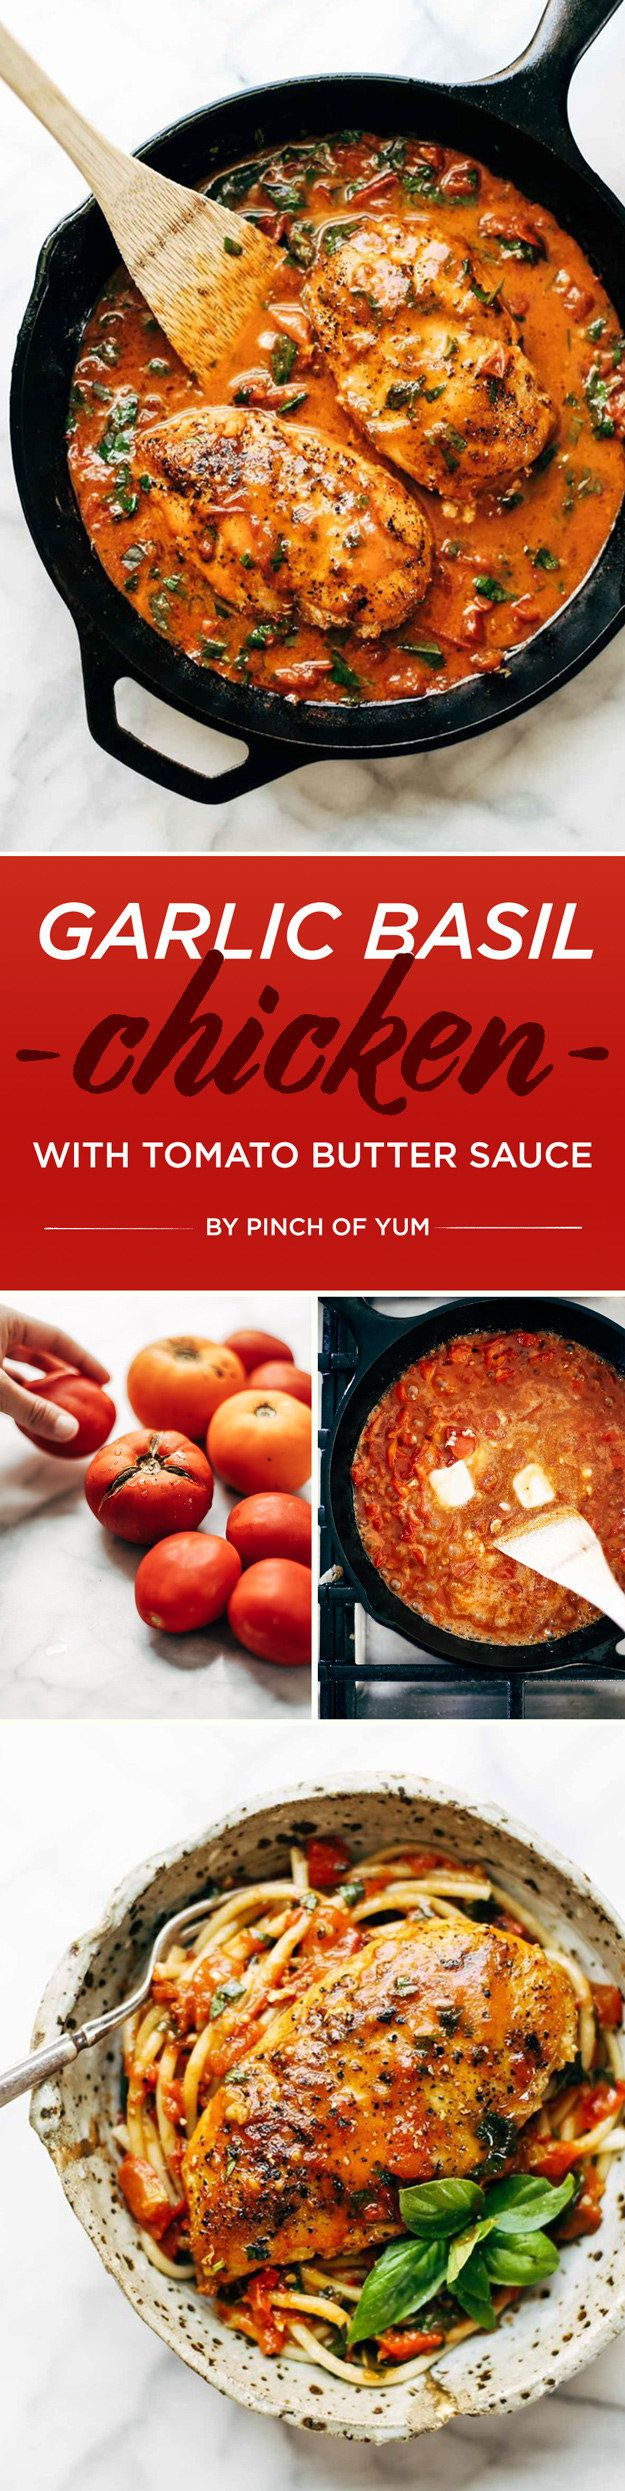 Garlic Basil Chicken with Tomato Butter Sauce | 7 Delicious Dinner Ideas